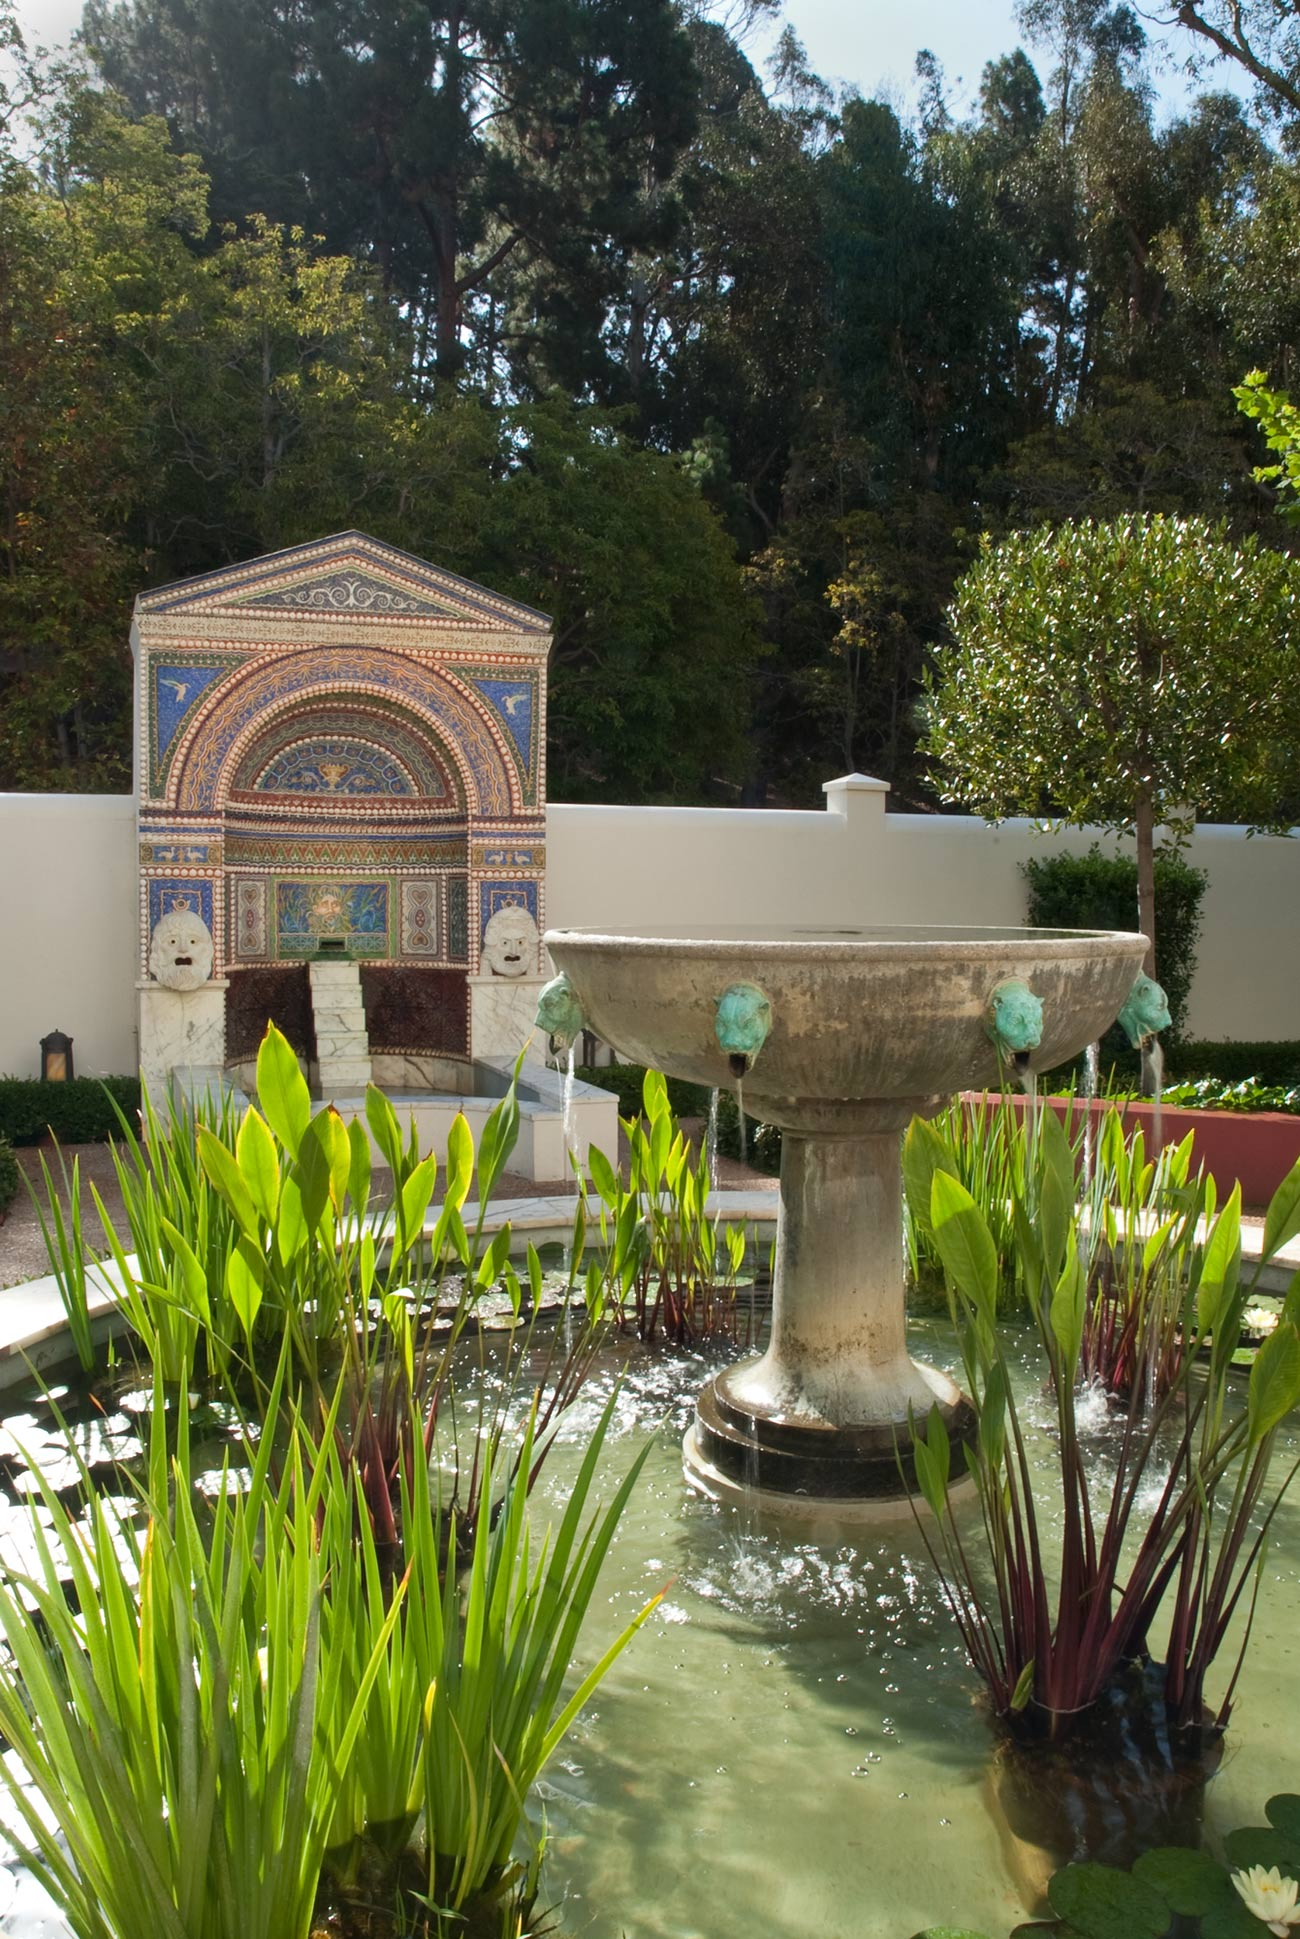 Daytime view of an enclosed garden at the Getty Villa with a central fountain with water plants and a mosaic fountain